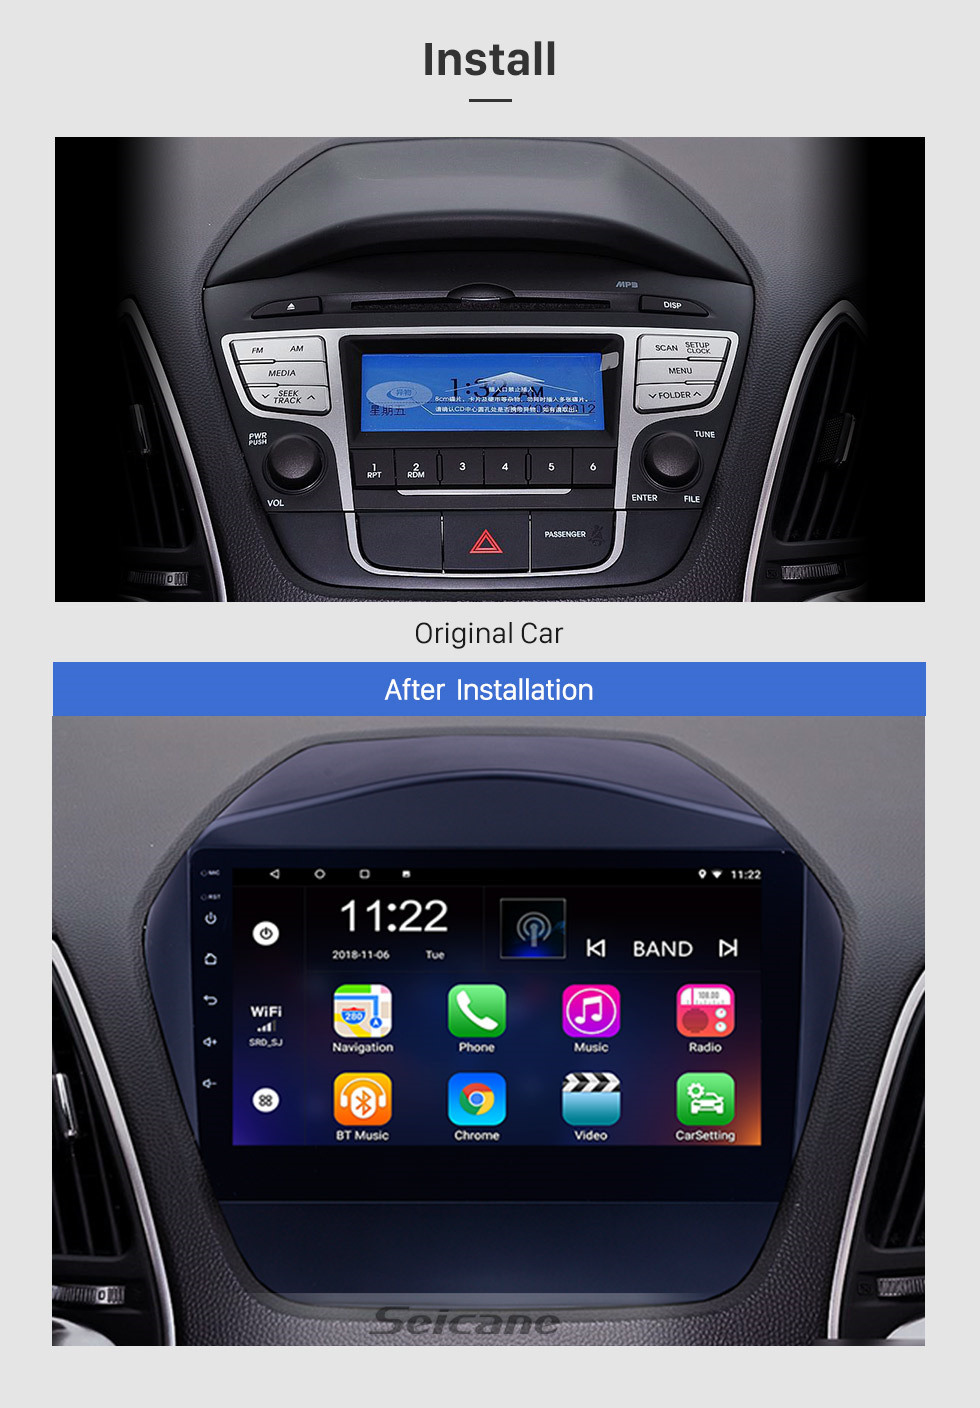 Seicane 9 inch HD Touchscreen Android 10.0 Radio for 2009 2010 2011-2015 Hyundai IX35 with GPS Sat Nav Bluetooth WIFI USB 1080P Video Mirror Link DVR OBD2